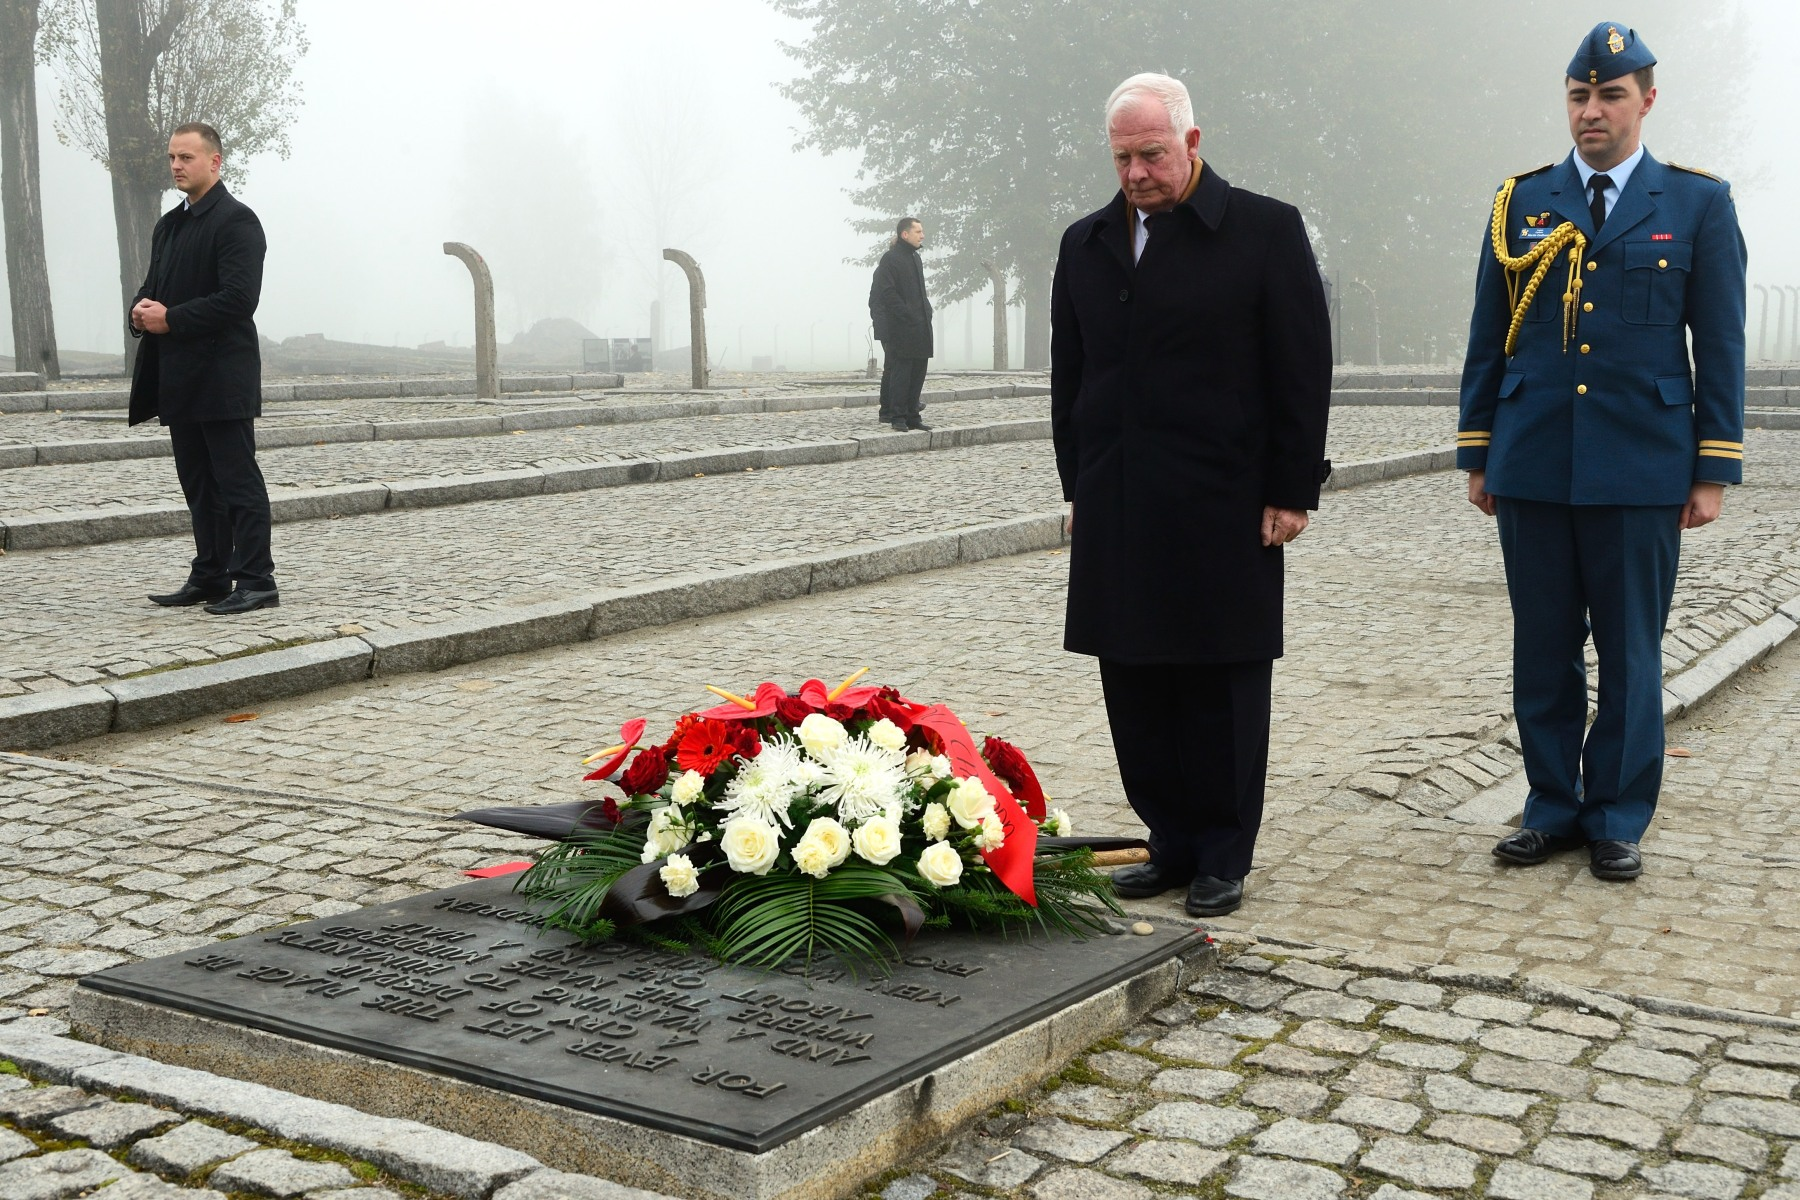 Their Excellencies also laid wreaths at the Auschwitz-Birkenau Memorial plaques.